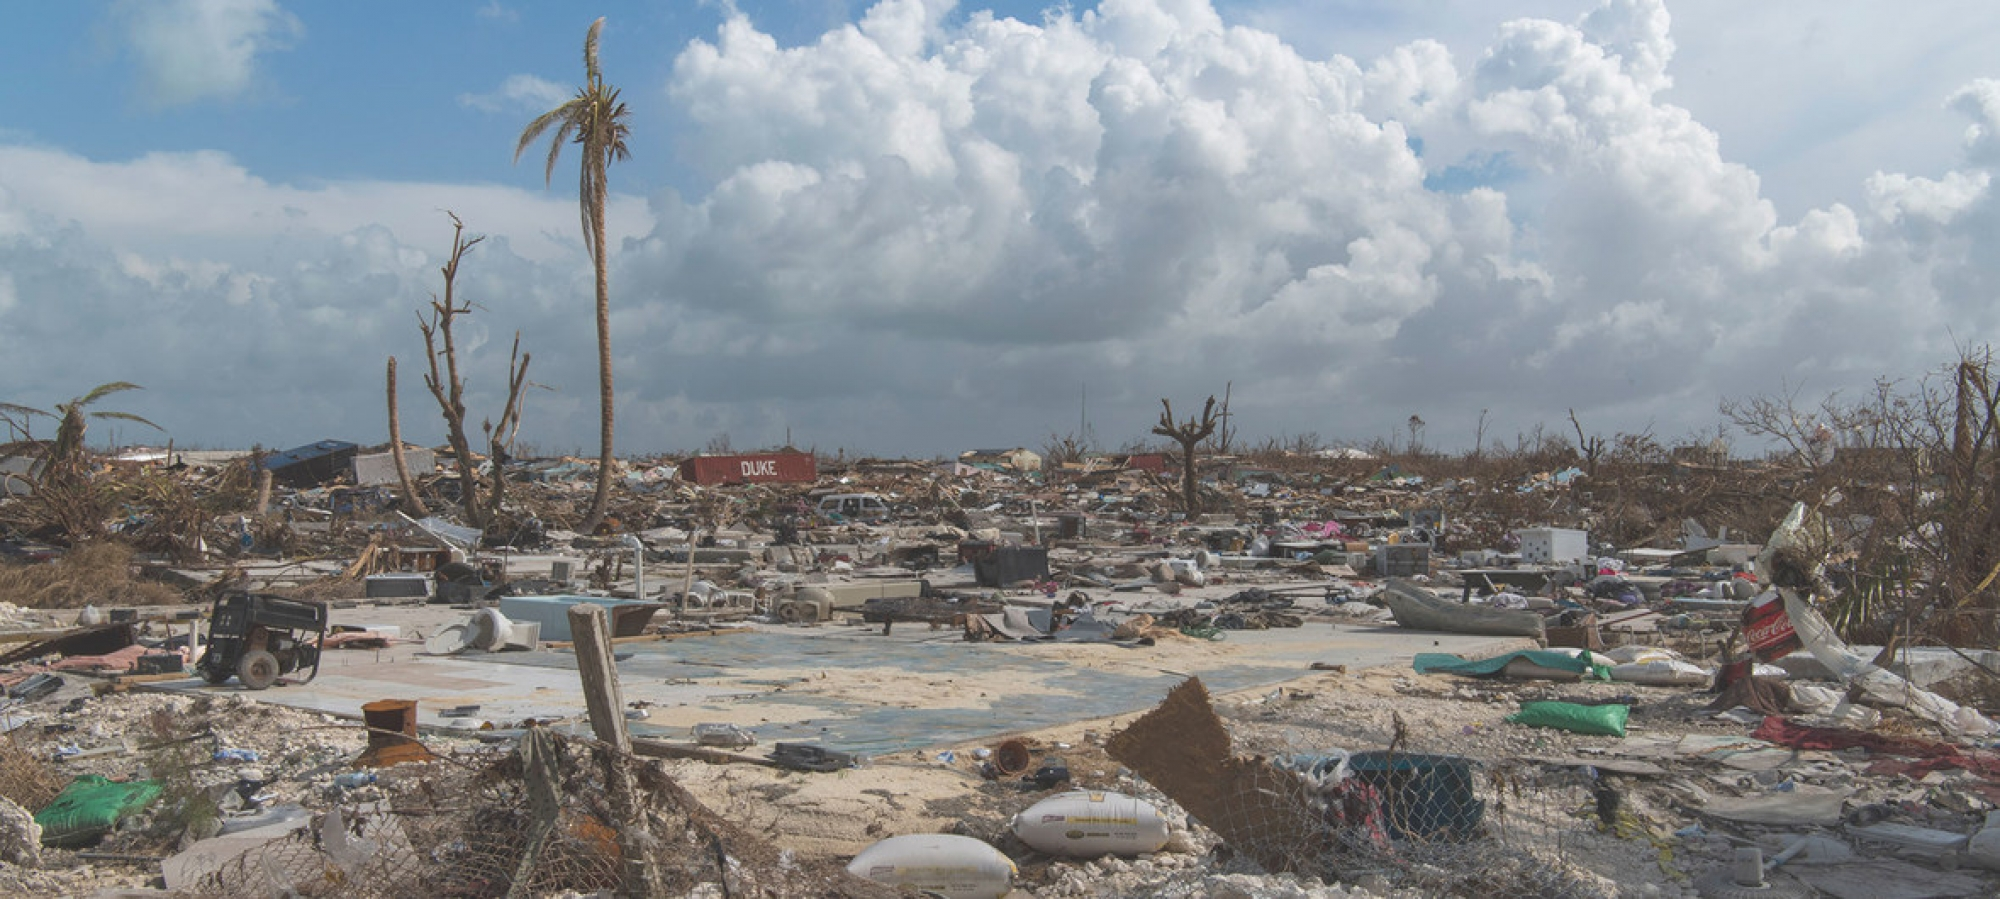 View of the mass destruction by Hurricane Dorian in Marsh Harbour, Abaco Island in the Bahamas. (11 September 2019)